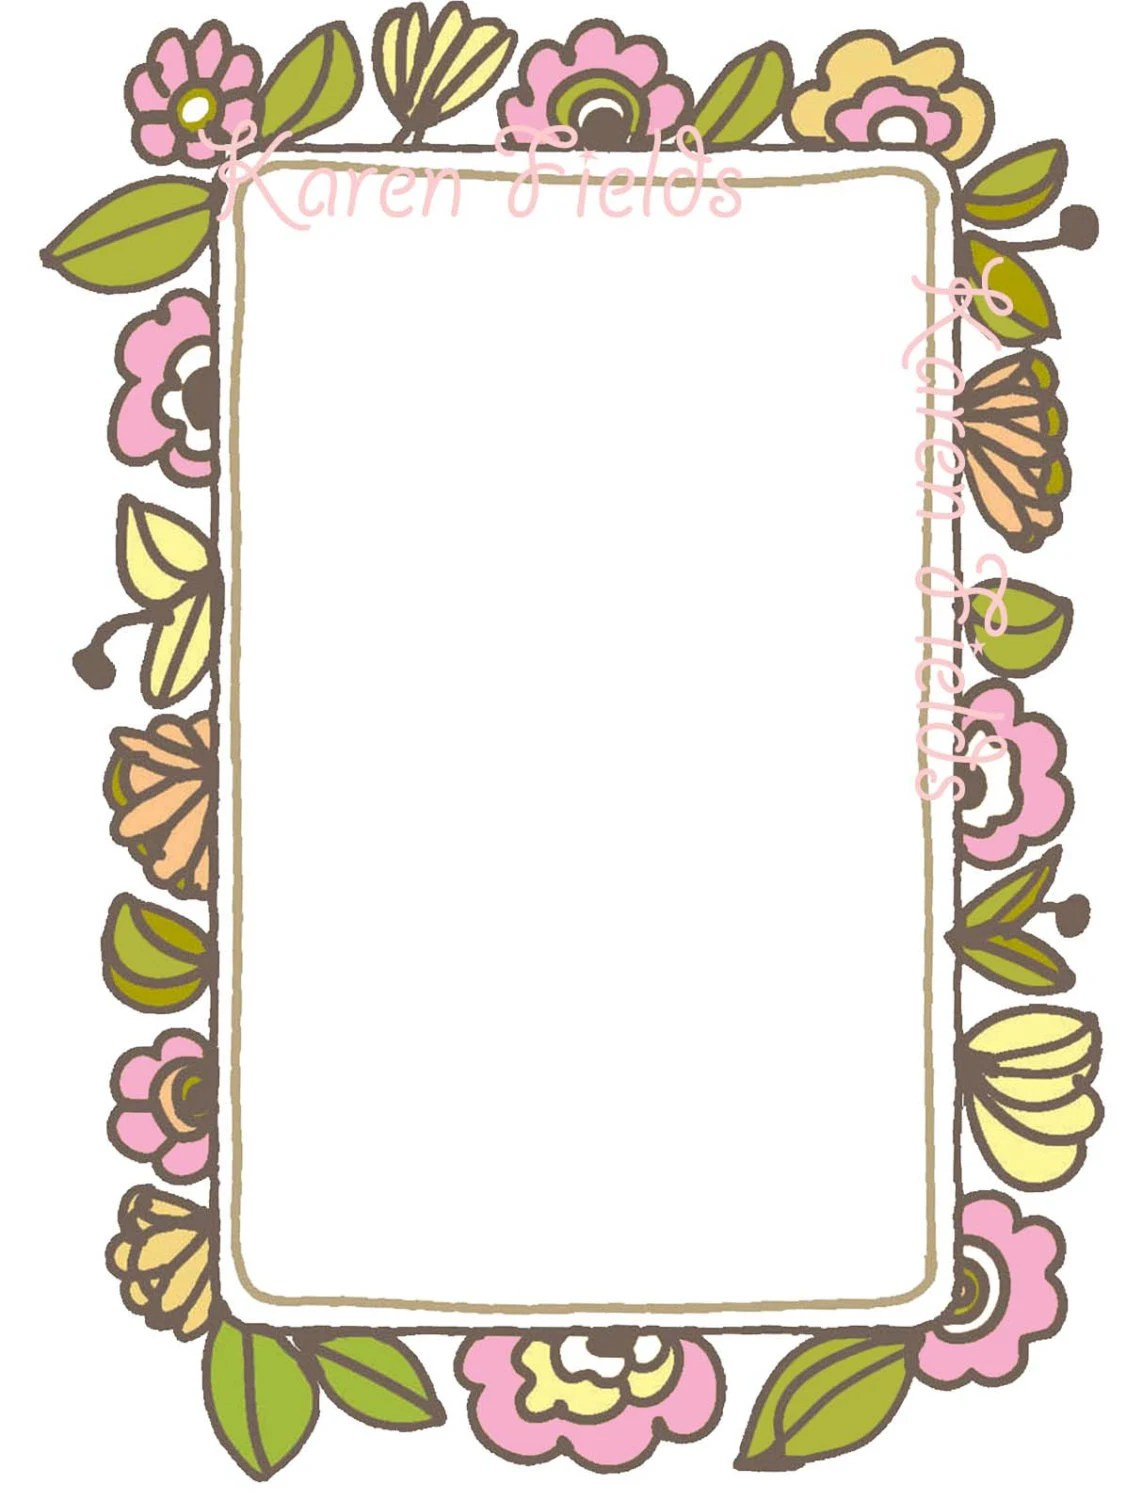 Cute Bordered Pastel Flower Wallpaper Items Similar To Borders Frames Vintage Style Decorative